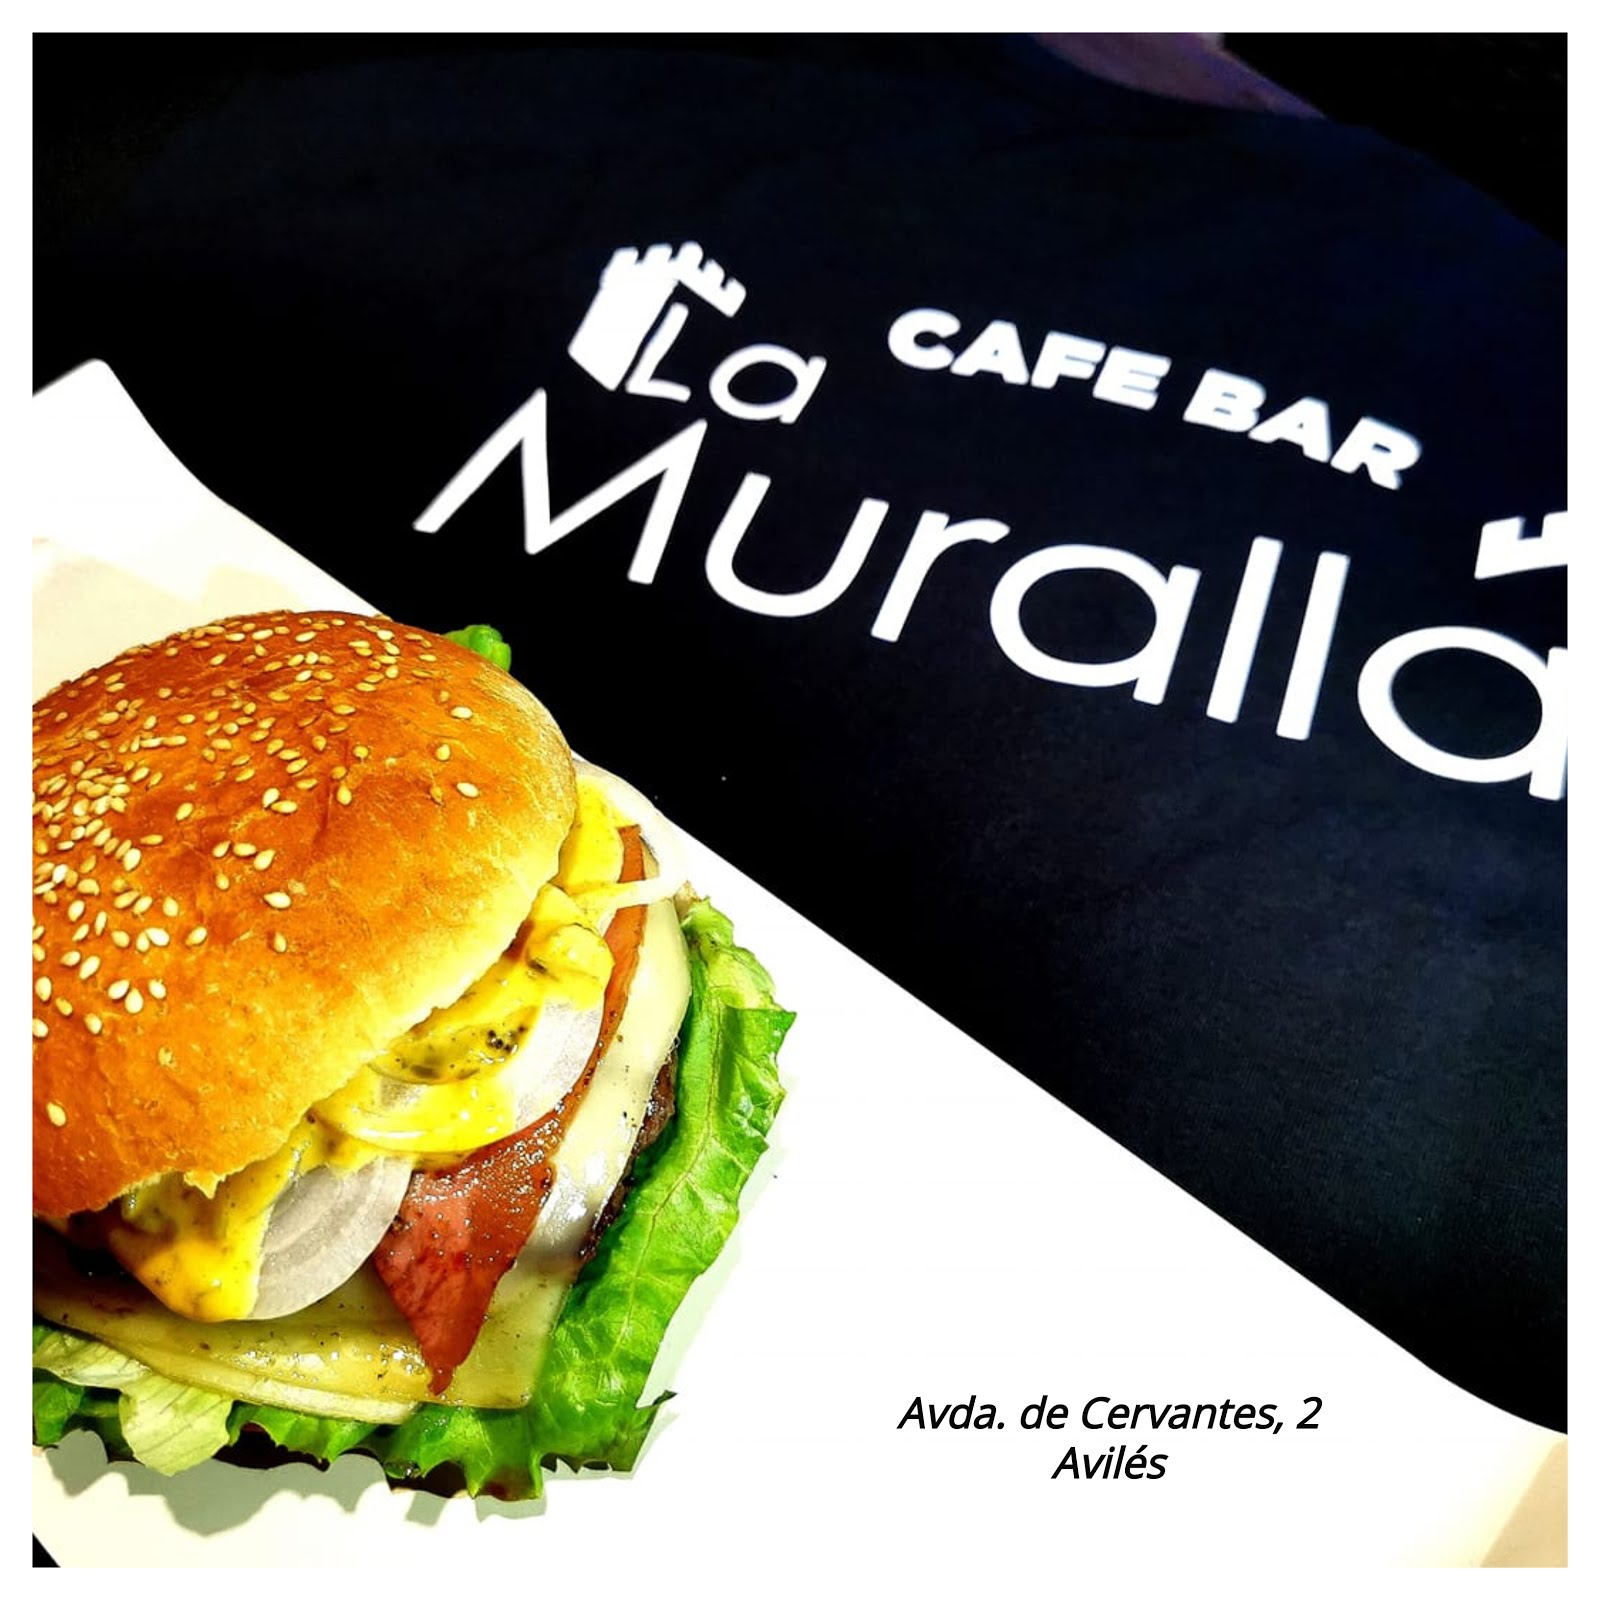 CAFE BAR LA MURALLA